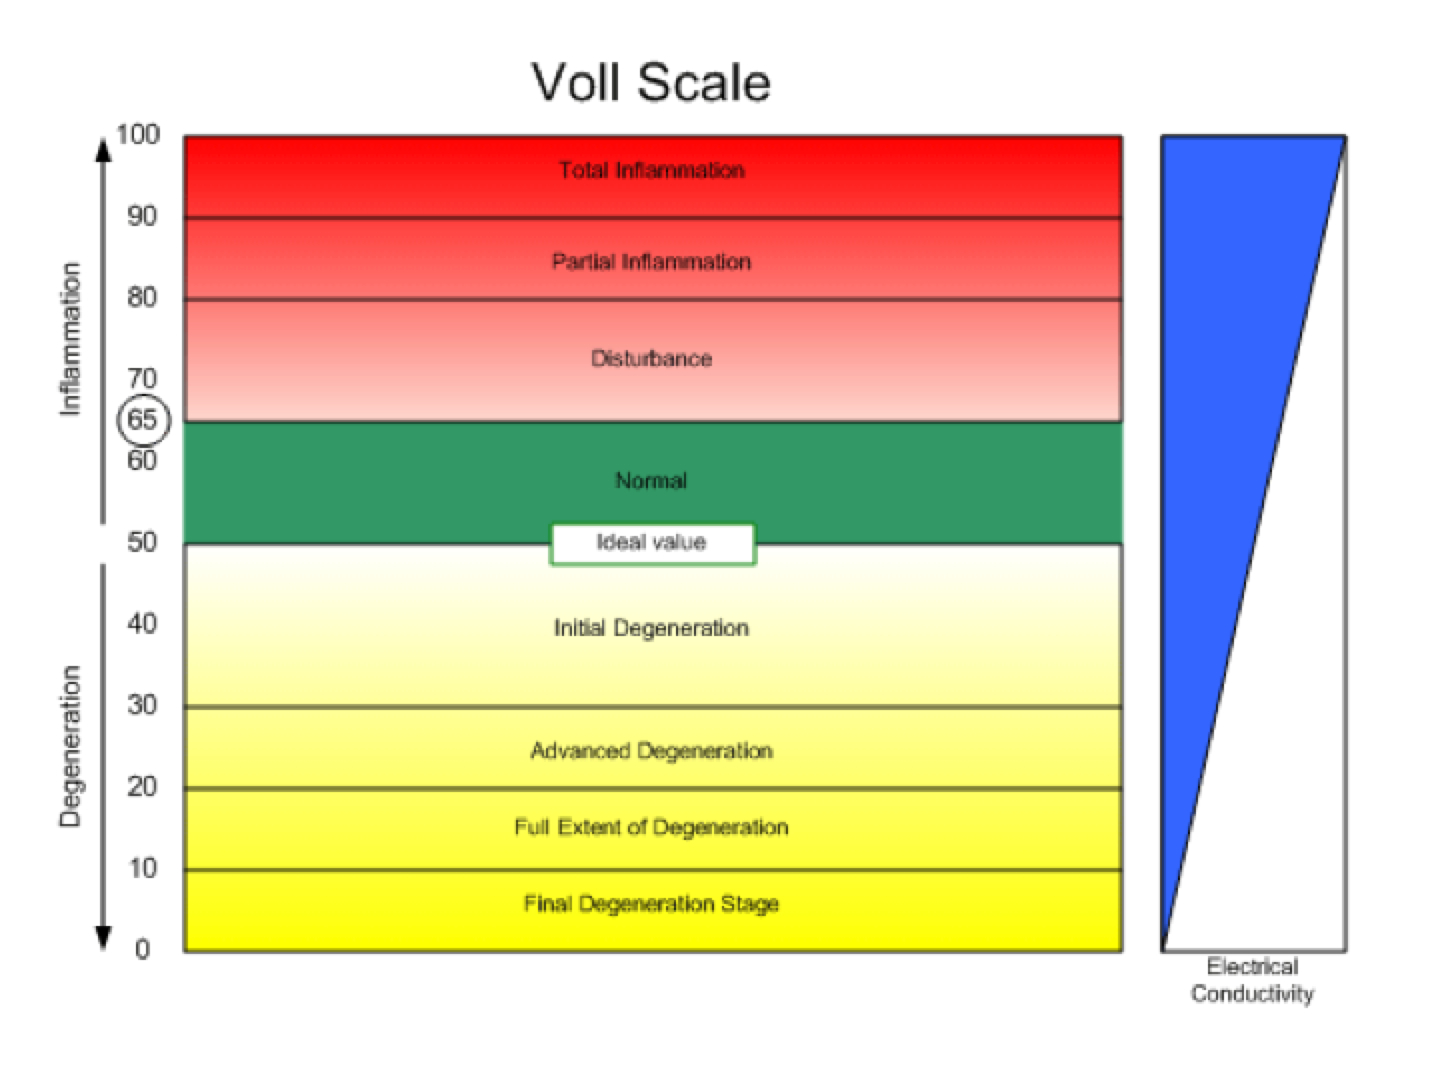 voll-scale